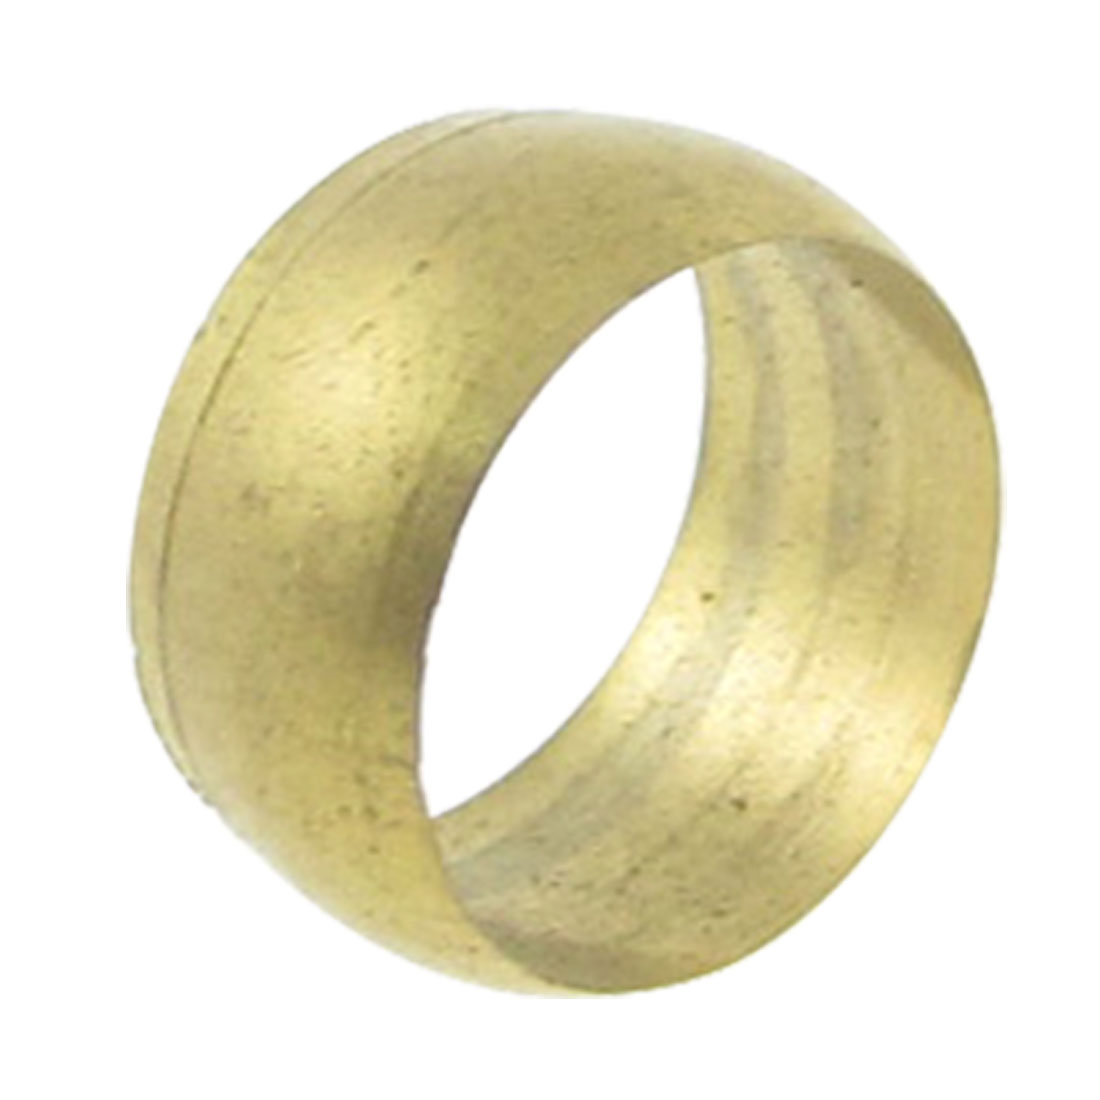 Gold-Tone-Brass-Compression-Fittings-Sleeve-Ferrule-Ring-15-32